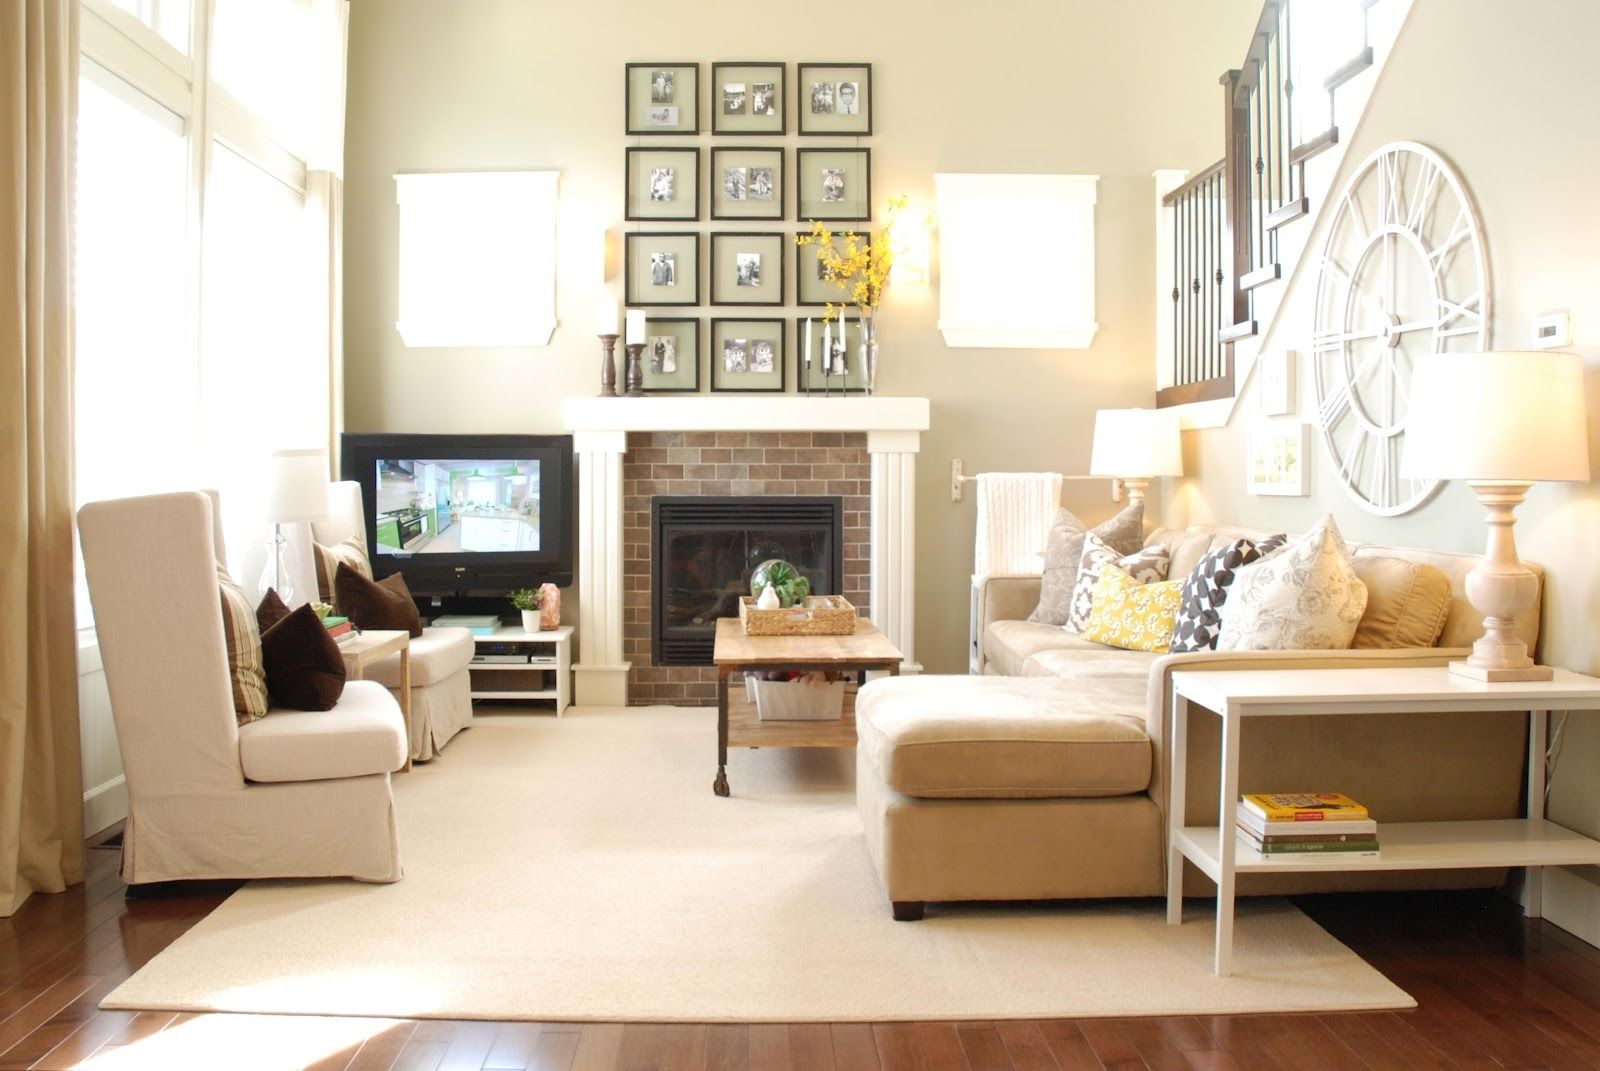 Deluxe Living Room Remodeling Ideas Living Room Remodel Beige Living Rooms Country French Living Room Remodeling your living room